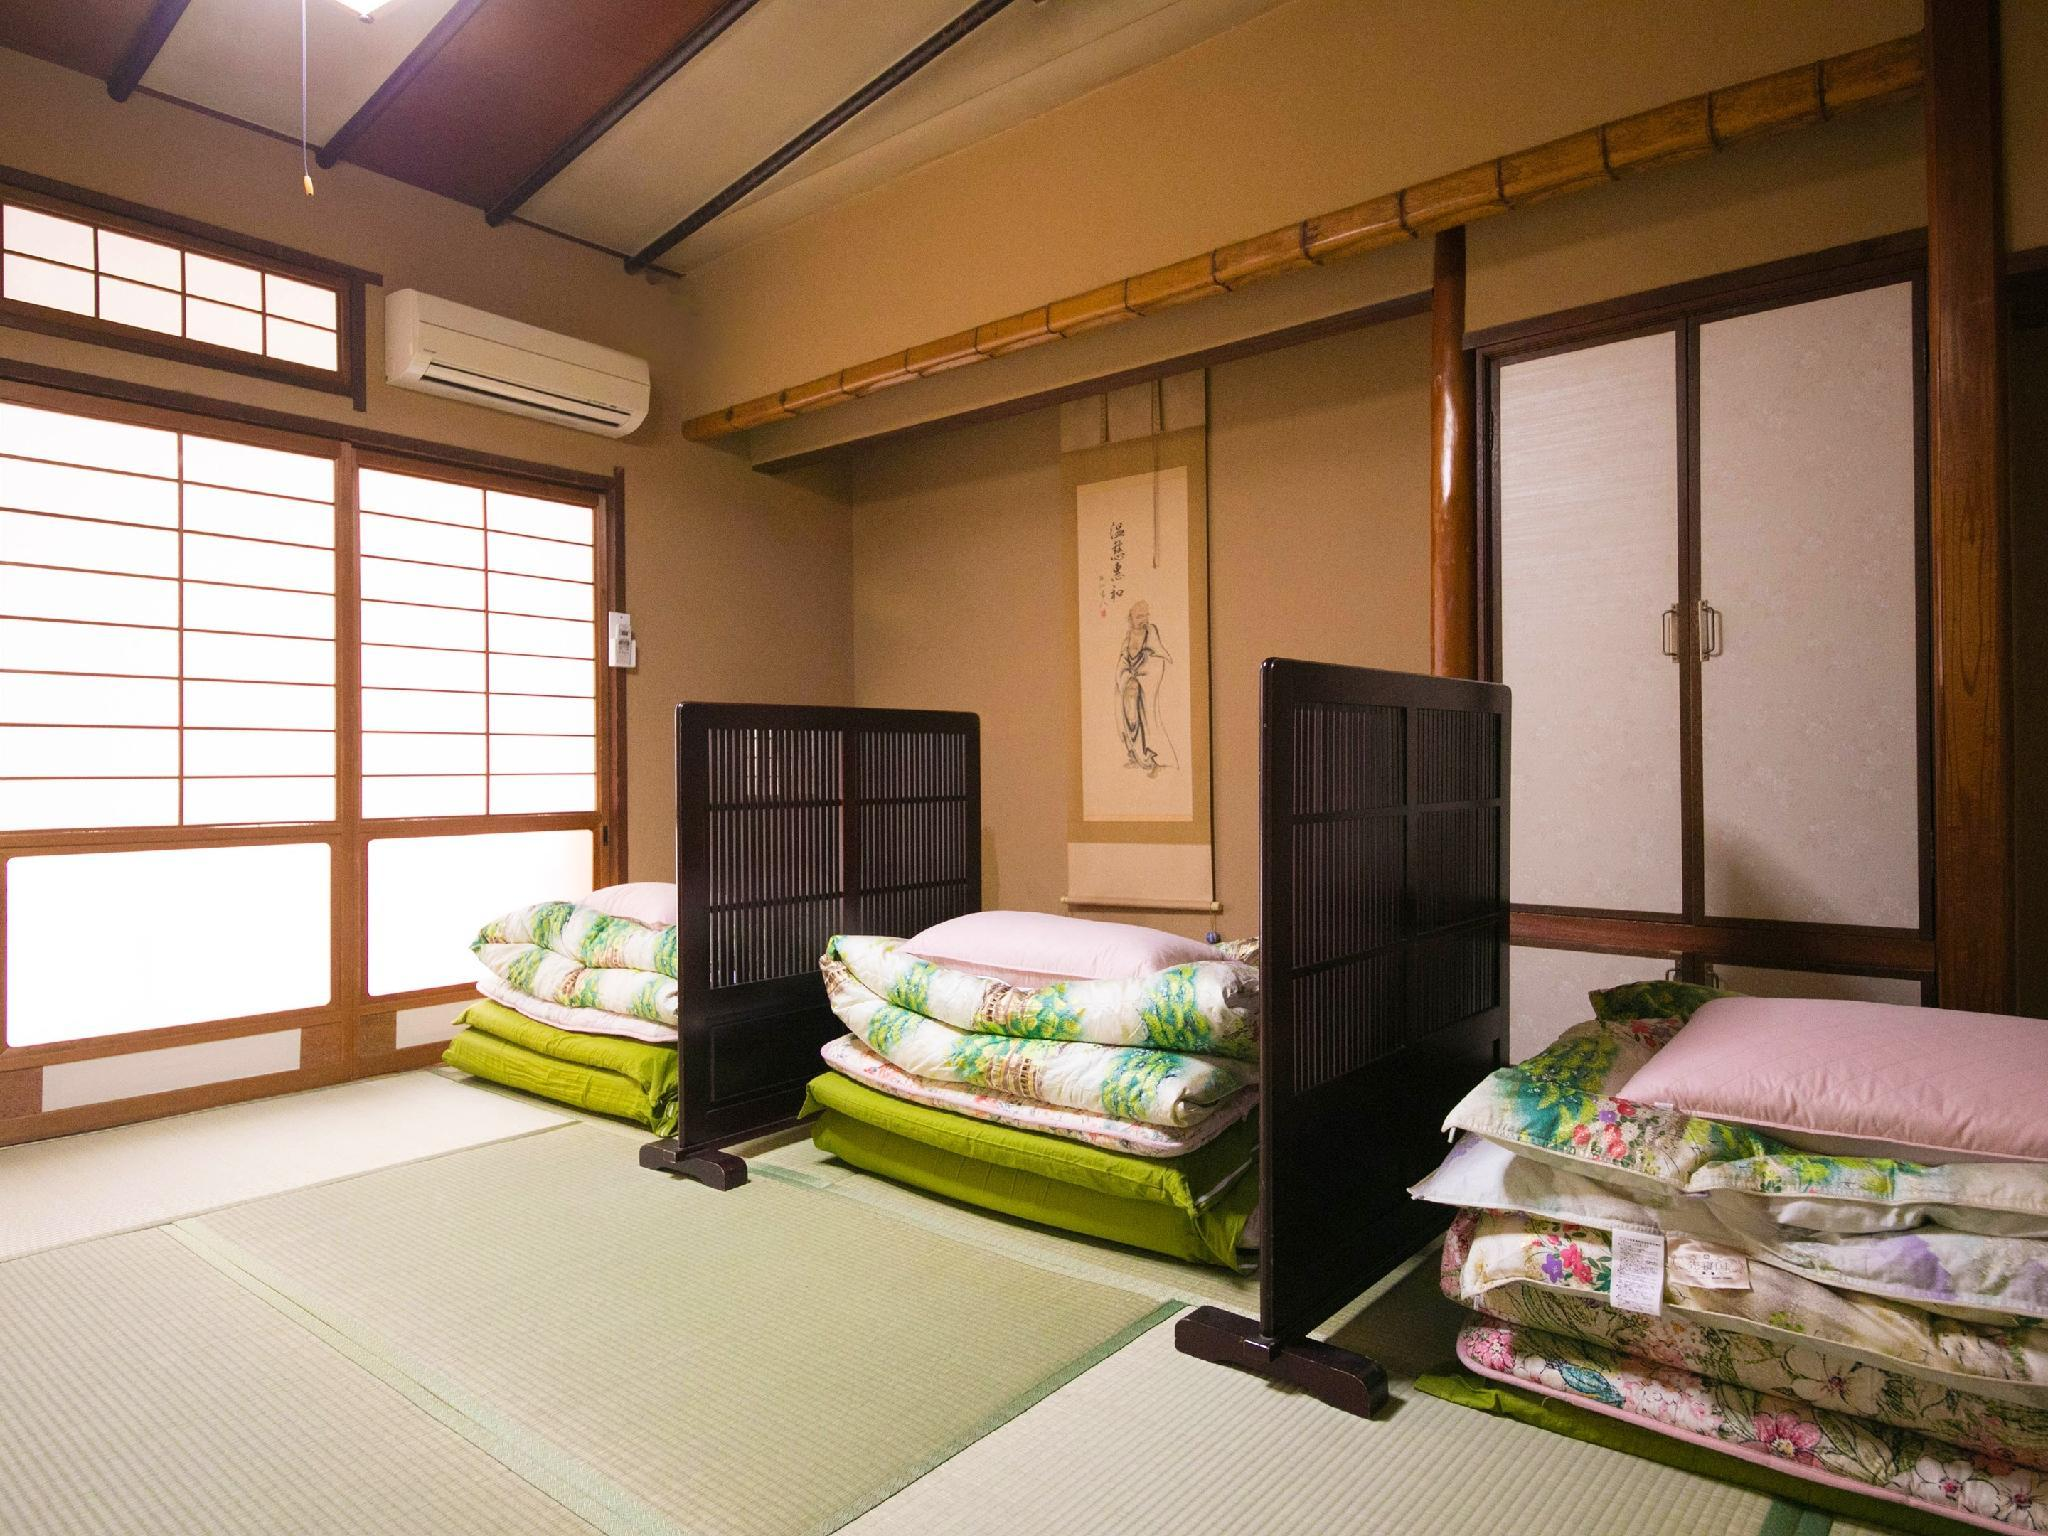 Standard Mixed Gender Dormitory Room (Futons)